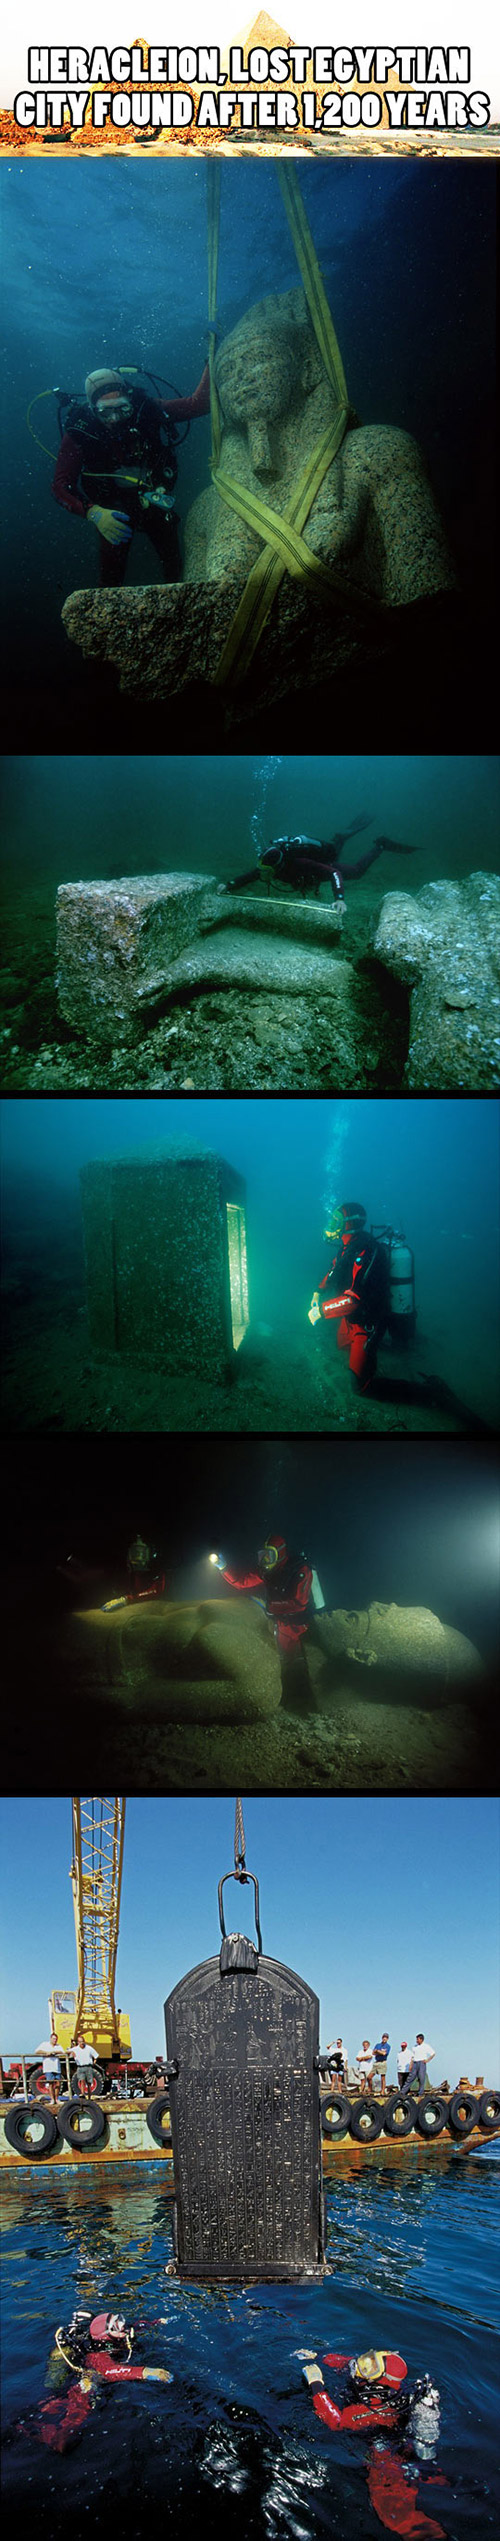 Heracleion Lost Egyptian City